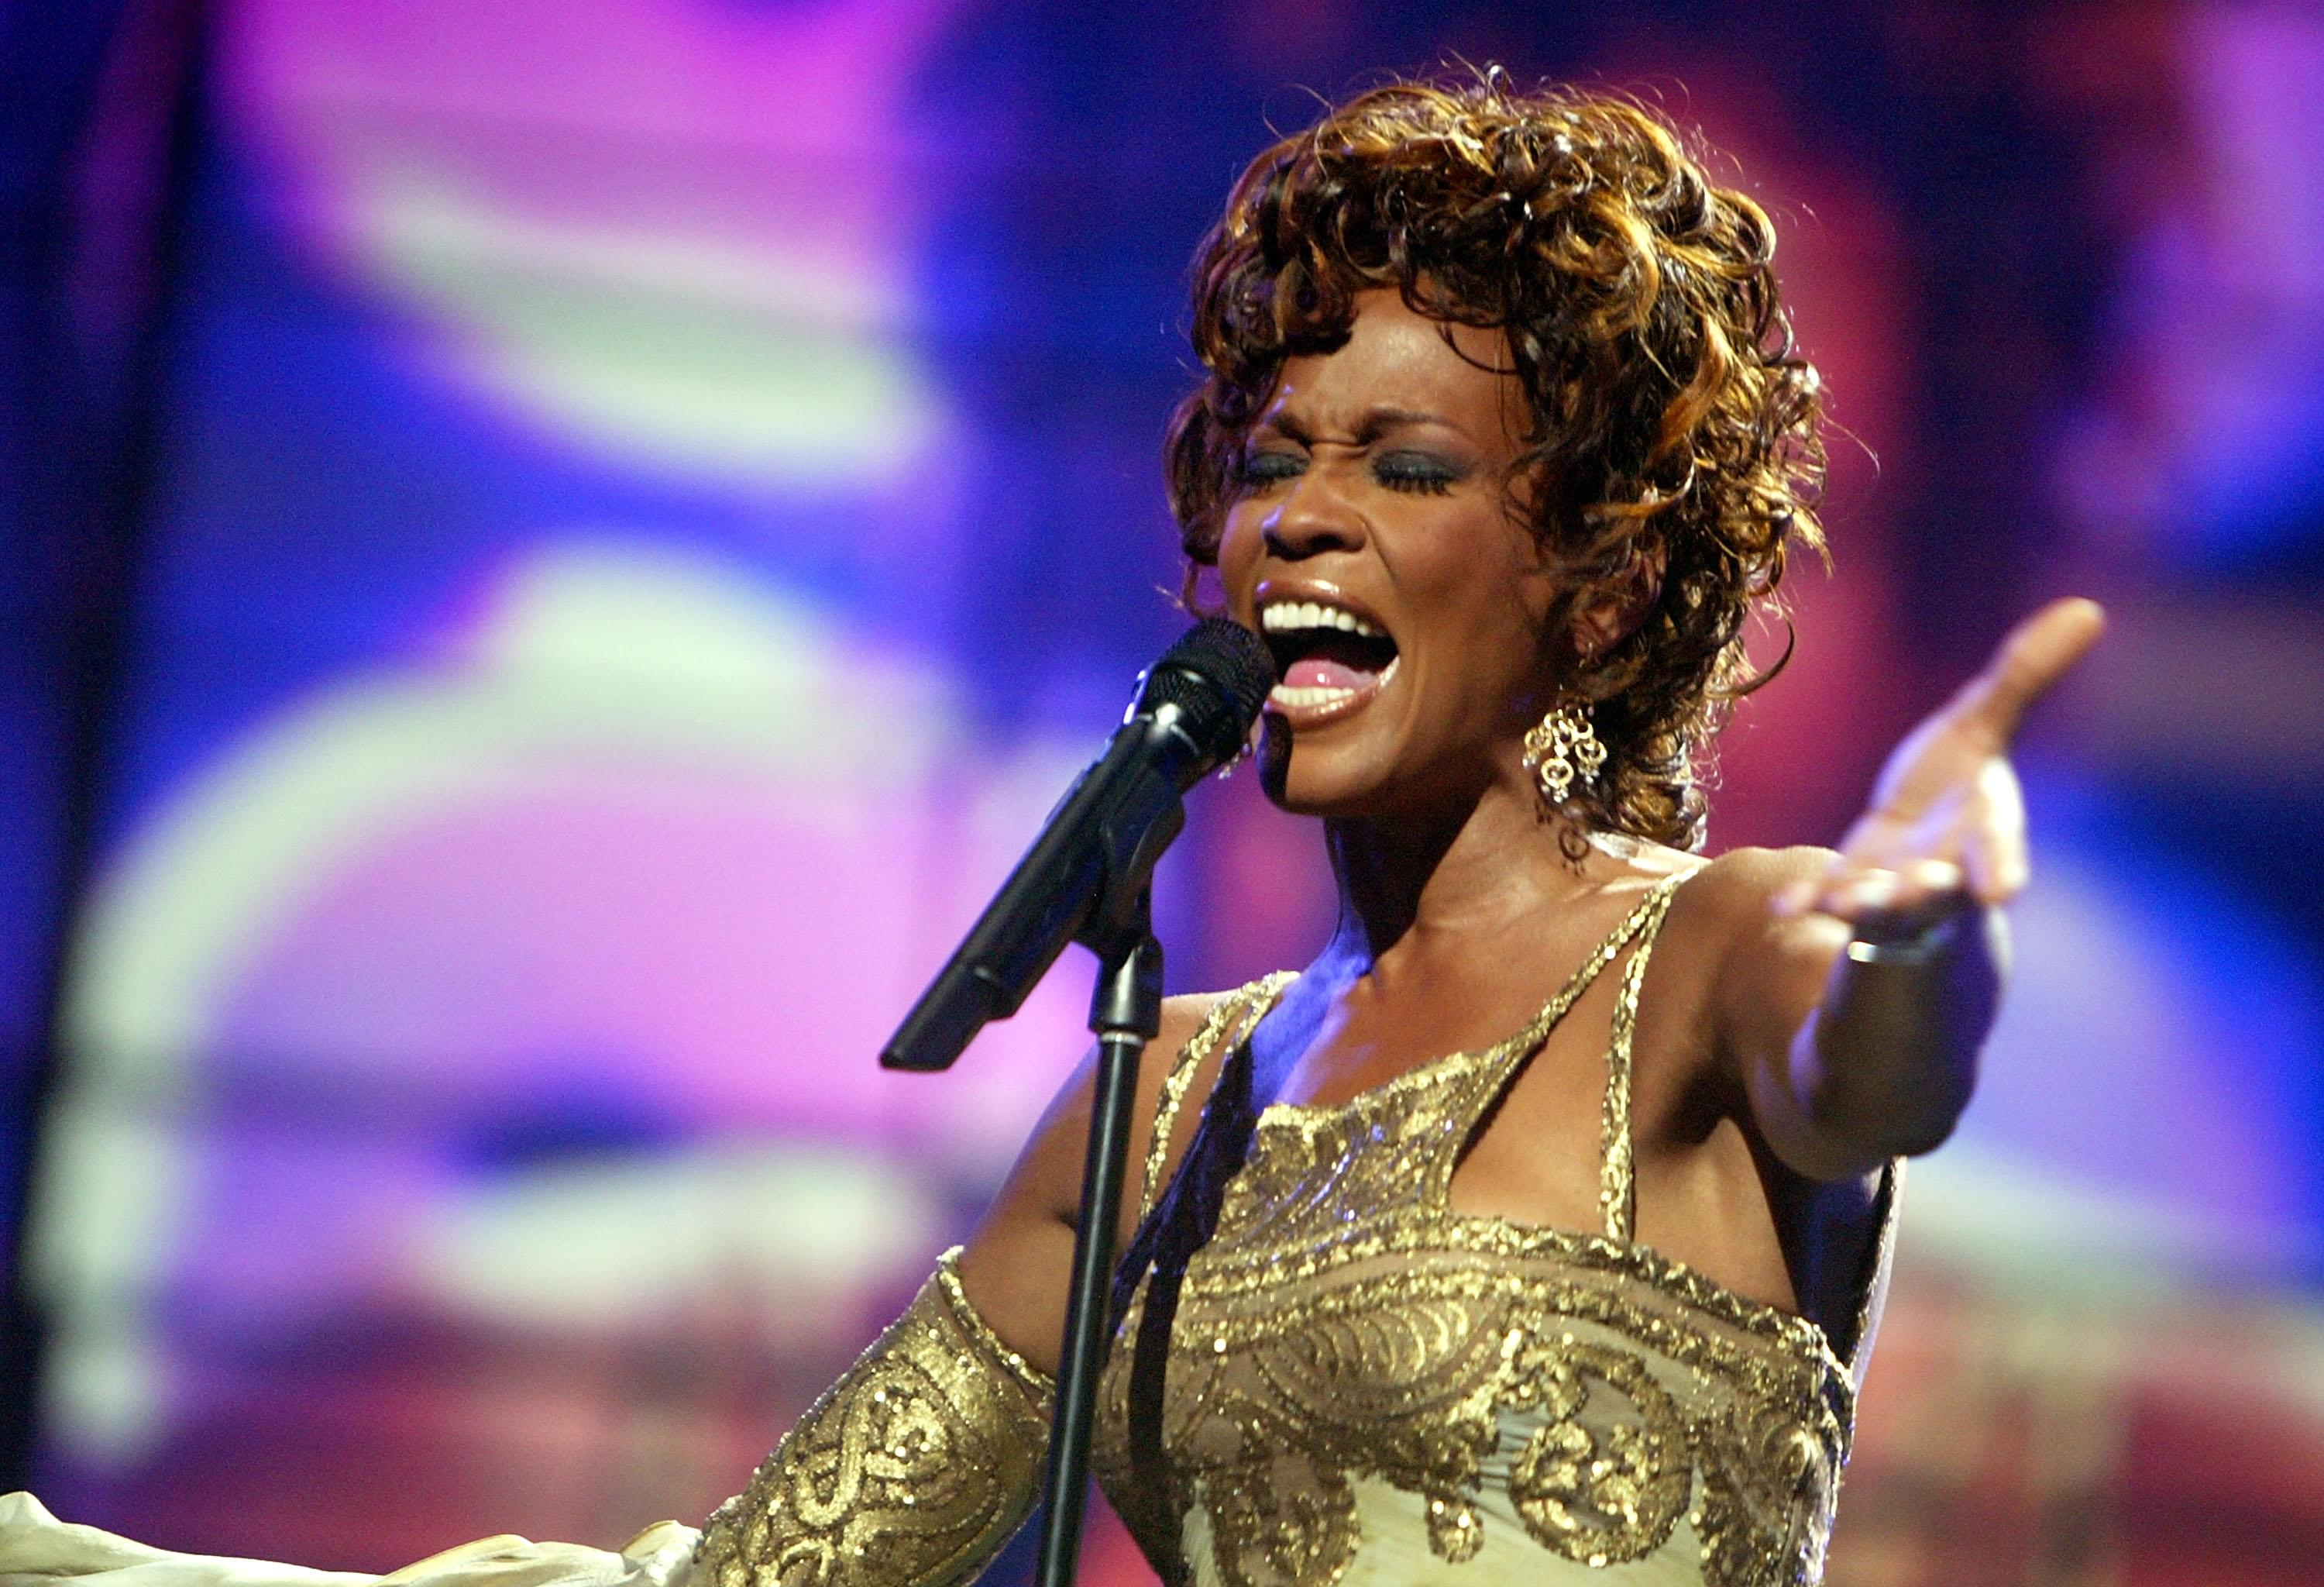 Fans react to first look of Whitney Houston hologram